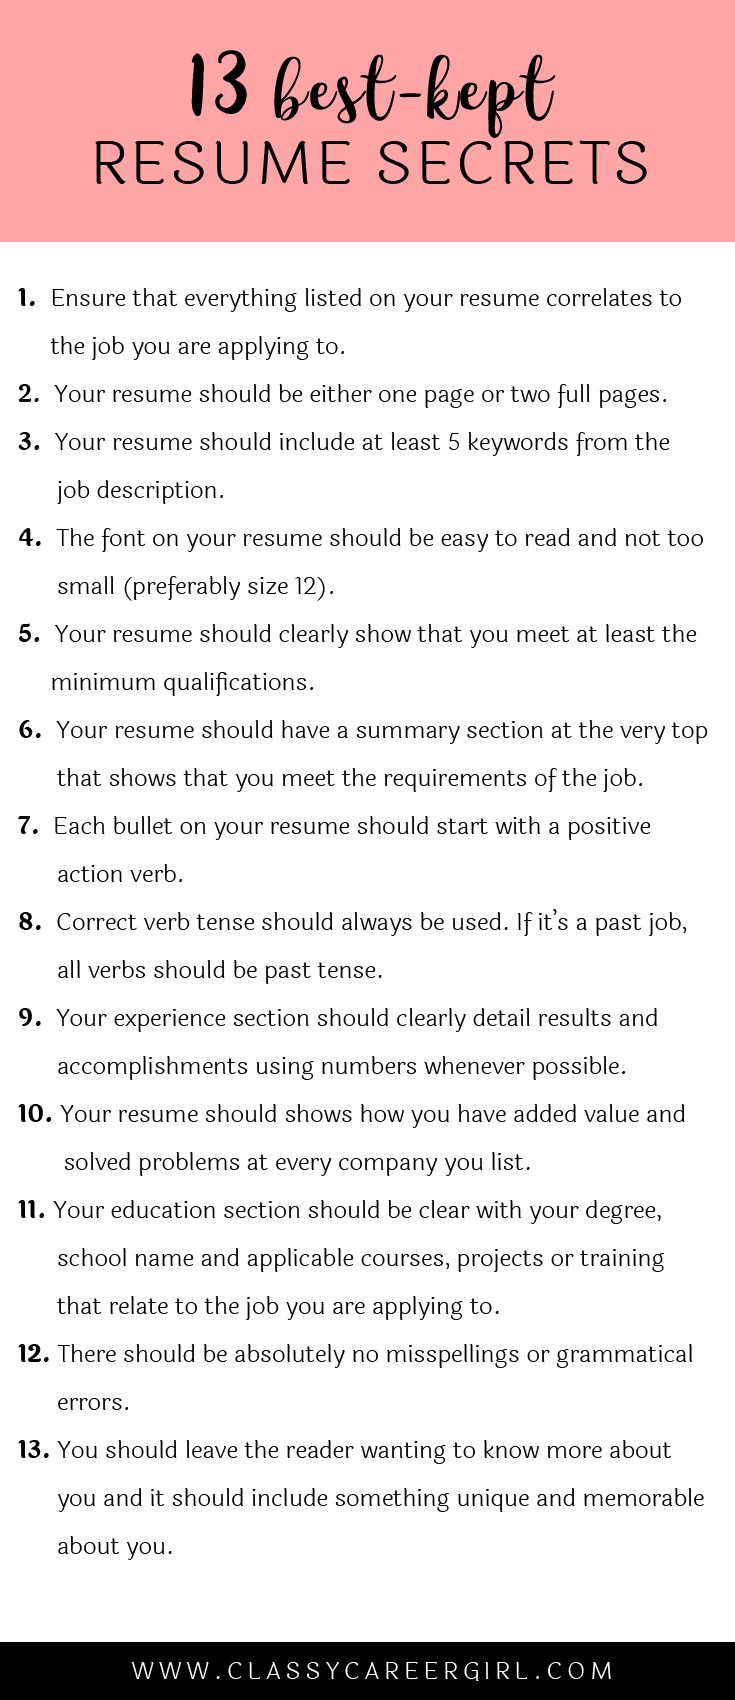 Opposenewapstandardsus  Winsome  Ideas About Resume On Pinterest  Cv Format Resume Cv And  With Fascinating Some Hiring Managers Will Toss Your Resume Out If You Dont Know These  With Delectable Search Resume Also Office Work Resume In Addition Registered Nurse Resumes And How To Create An Resume As Well As Wharton Resume Additionally Great Resume Example From Pinterestcom With Opposenewapstandardsus  Fascinating  Ideas About Resume On Pinterest  Cv Format Resume Cv And  With Delectable Some Hiring Managers Will Toss Your Resume Out If You Dont Know These  And Winsome Search Resume Also Office Work Resume In Addition Registered Nurse Resumes From Pinterestcom